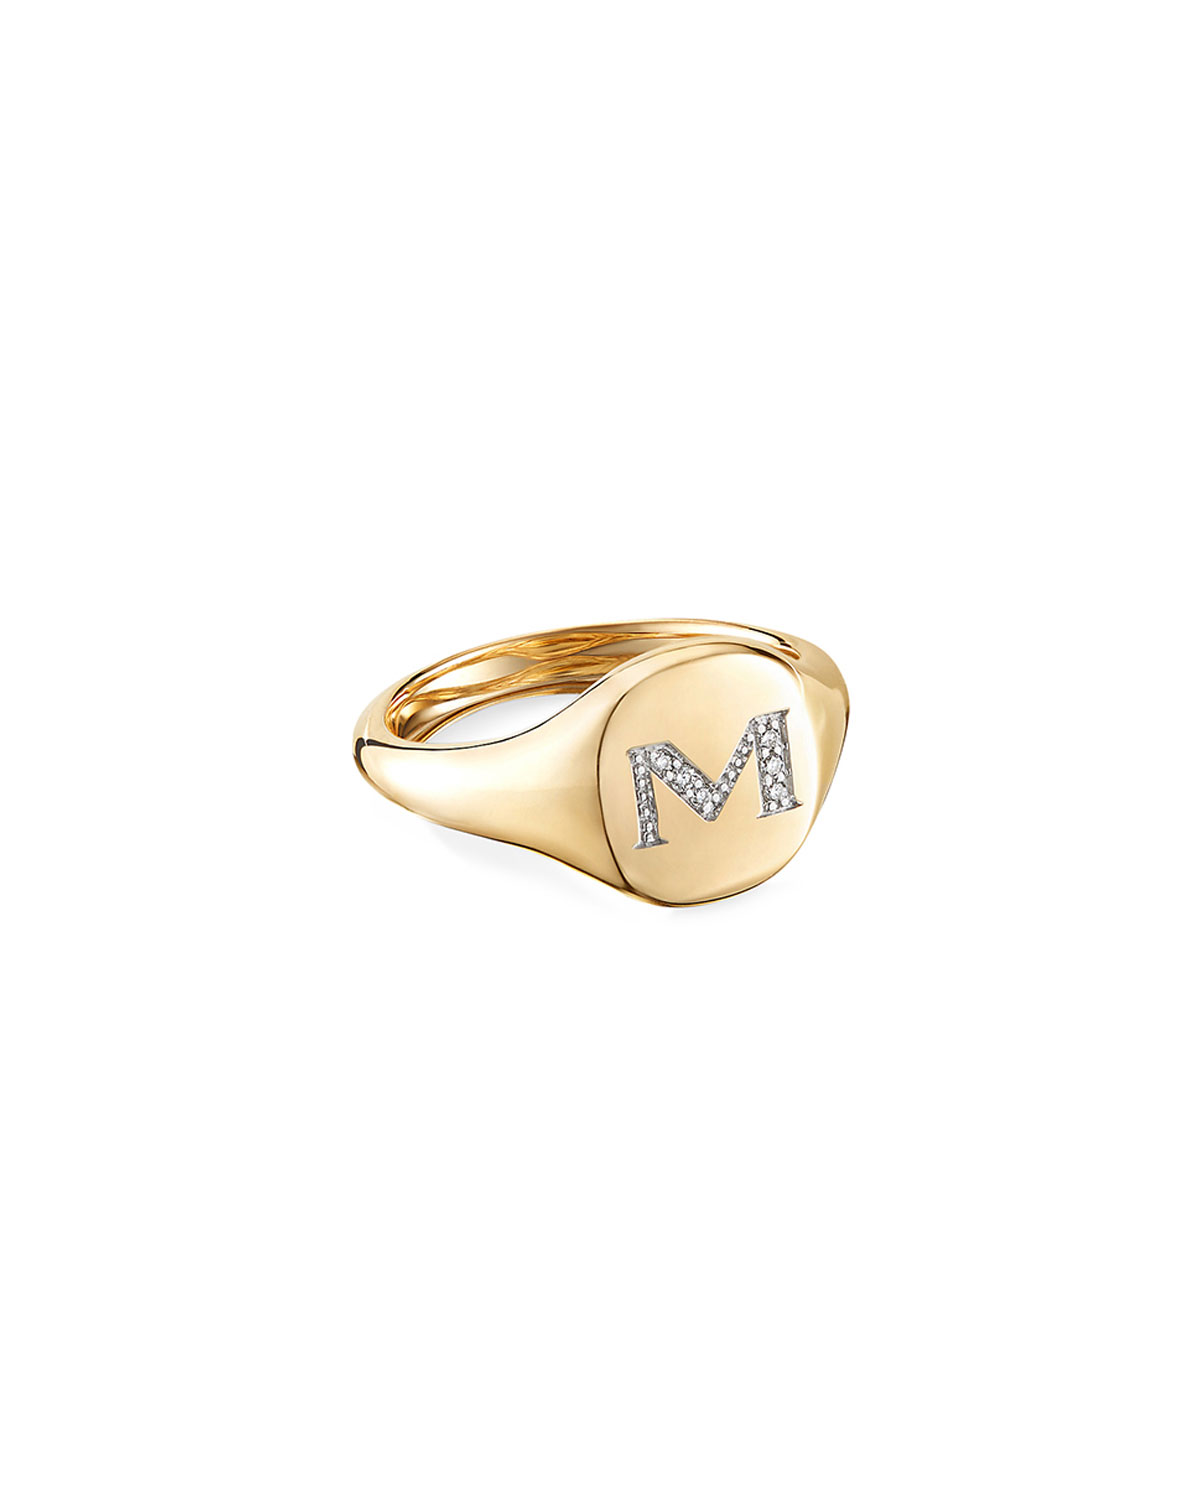 David Yurman Mini DY Initial M Pinky Ring in 18K Yellow Gold with Diamonds, Size 4